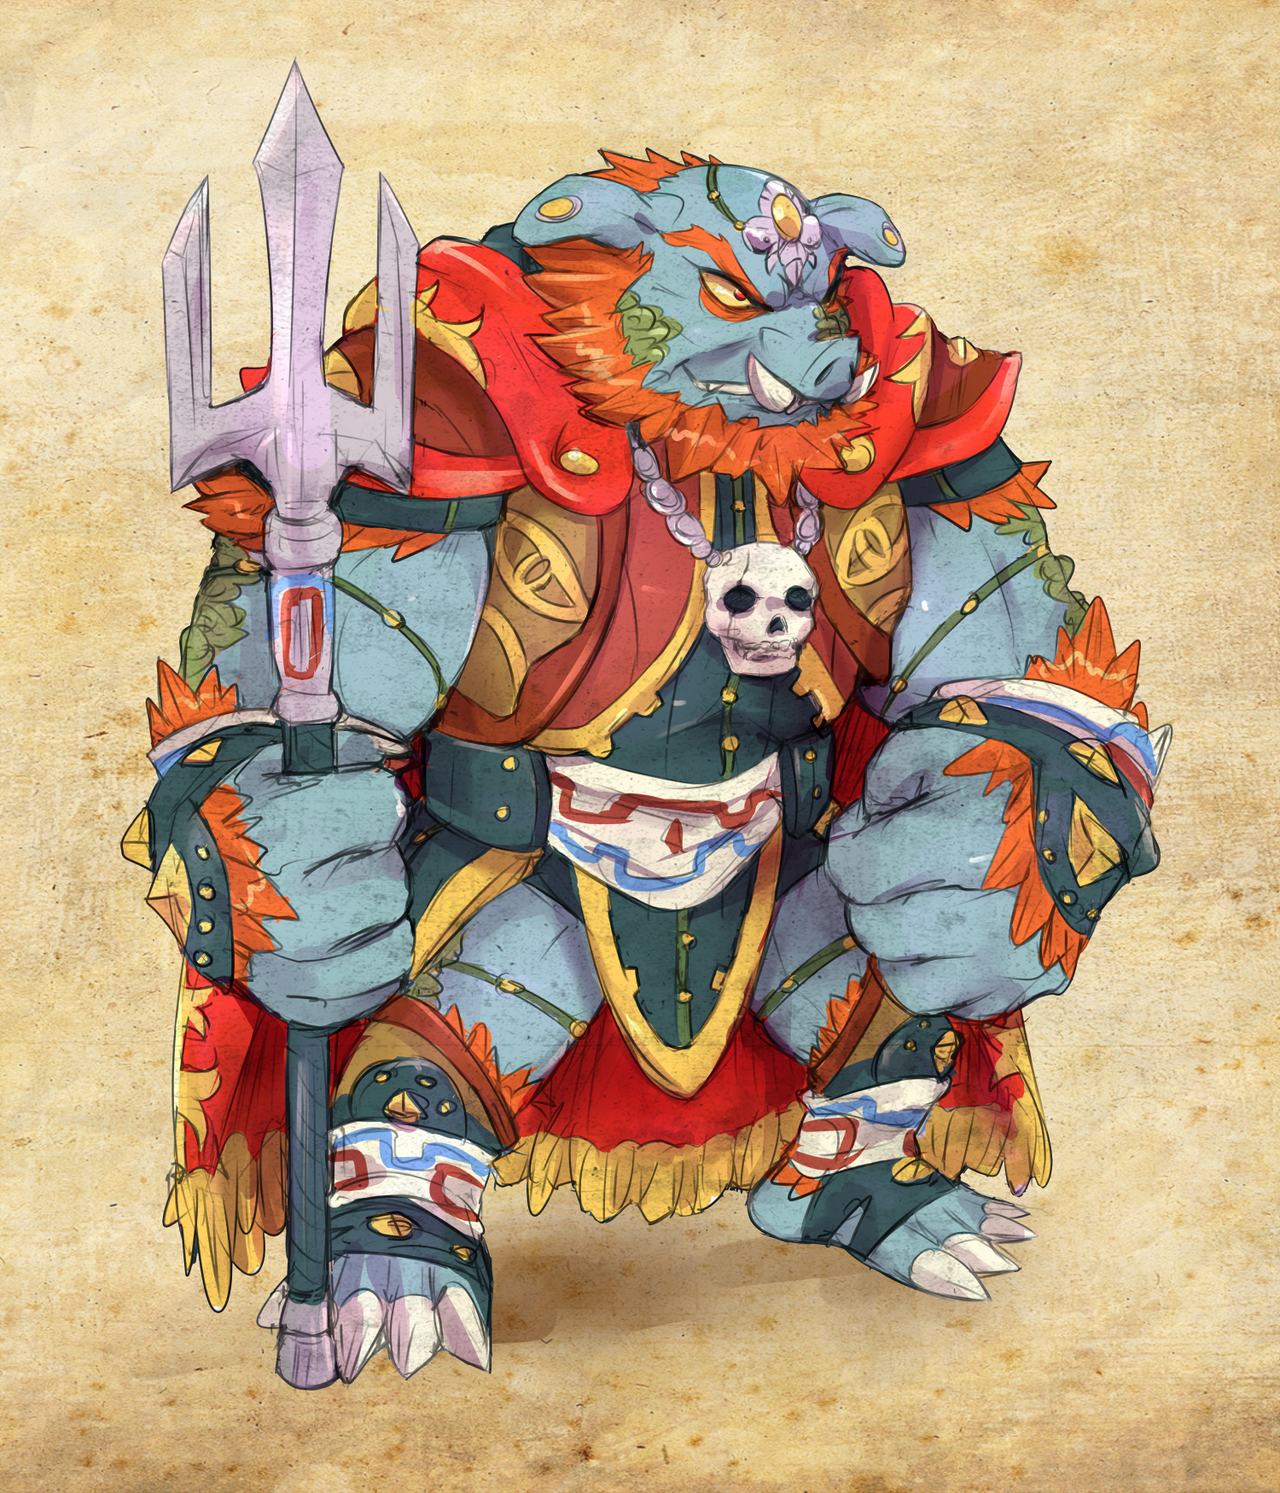 GANON Redesign - [ZELDA - A Link to the Past] by Cylent-Nite